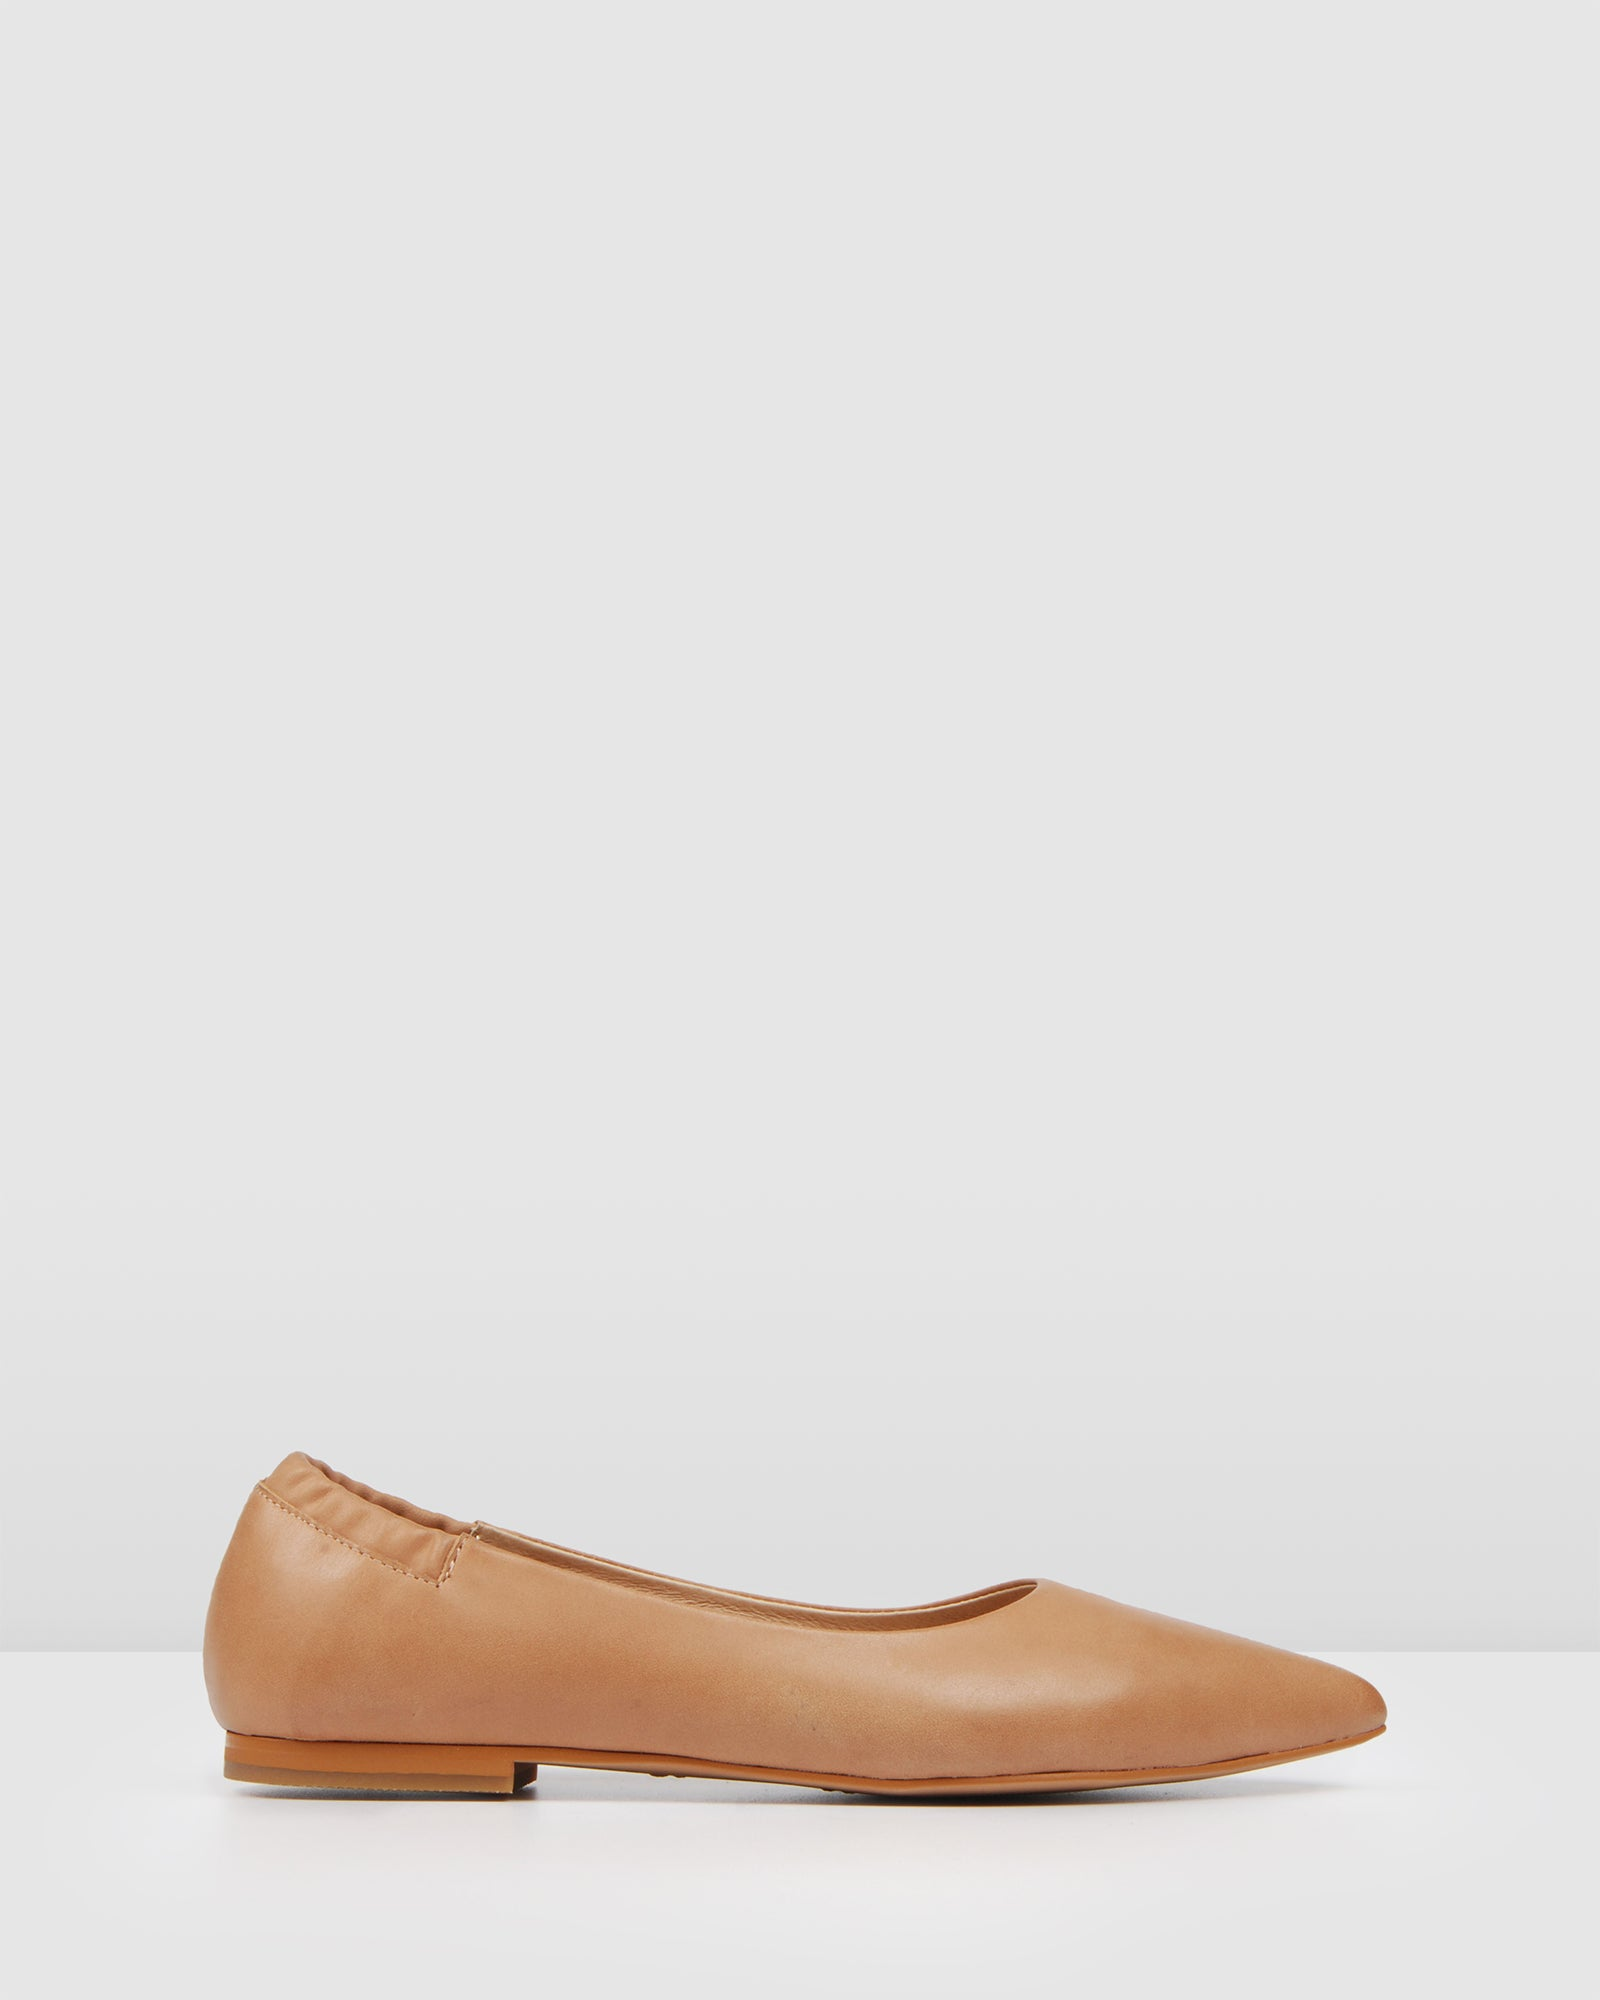 0b2a0e58ce Selby Ballet Flats Tan Leather. $159.95. Add ...